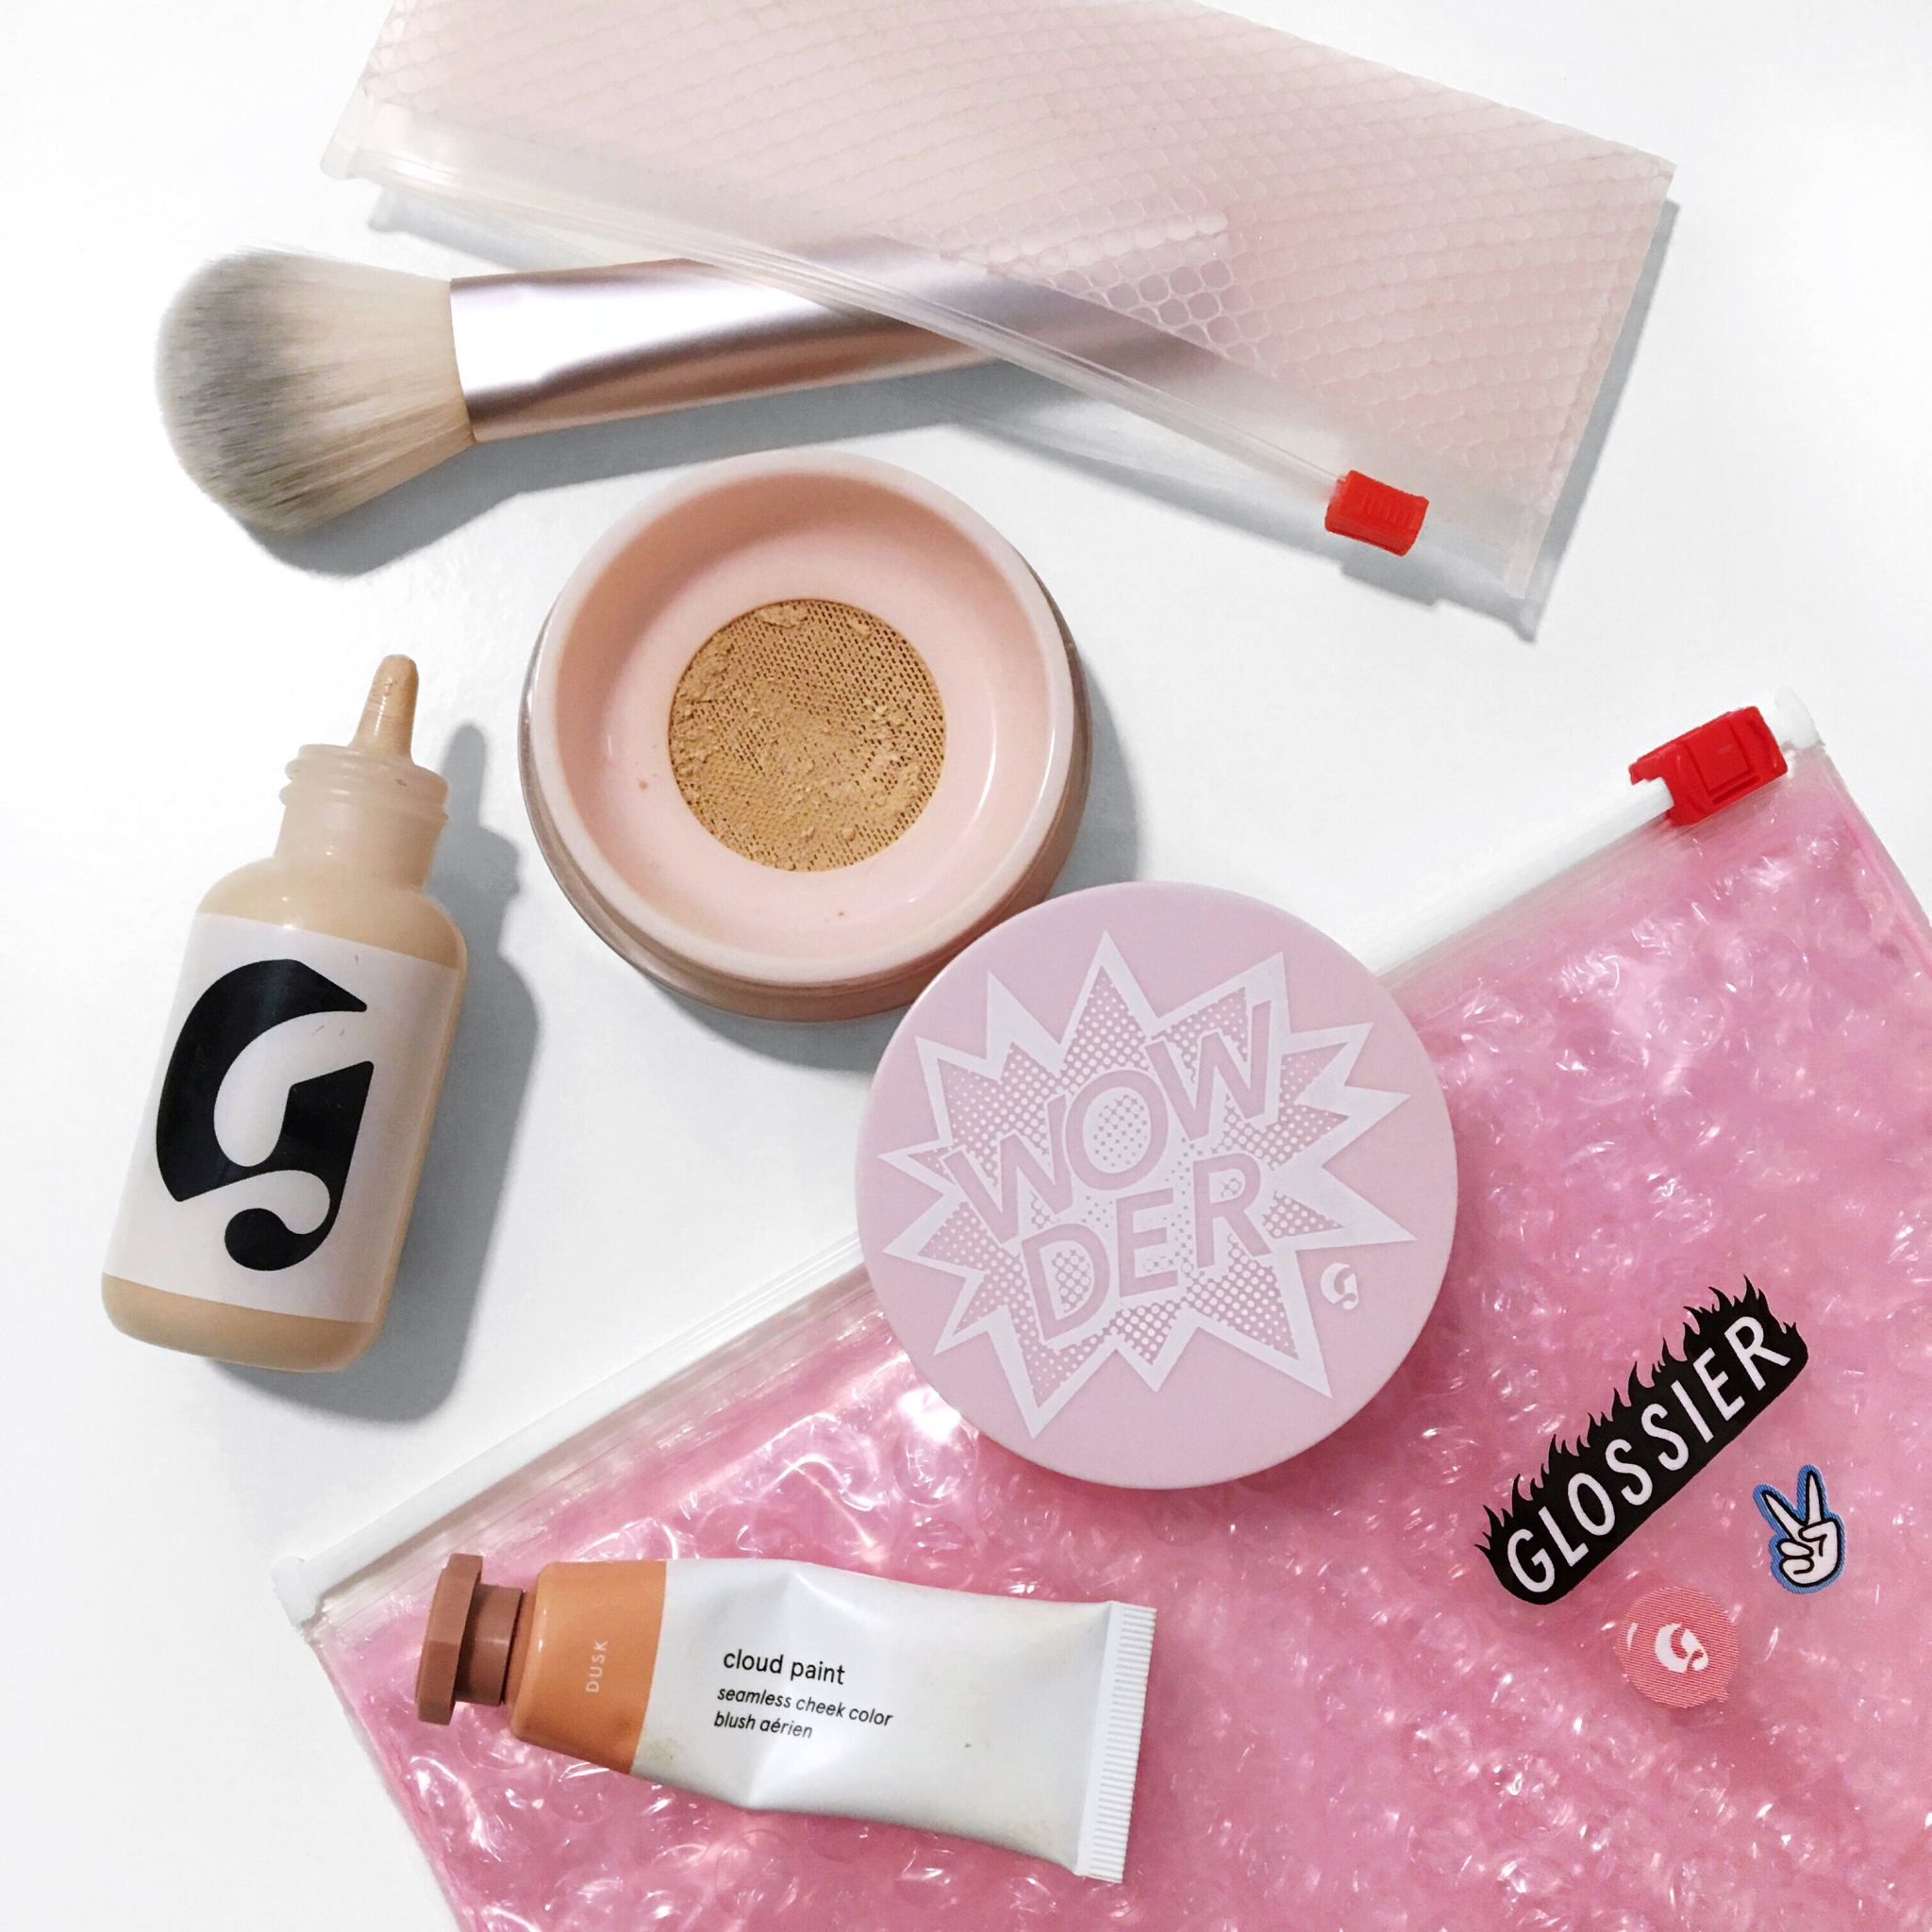 Glossier Base Makeup Wowder Bolt Blogs.JPG